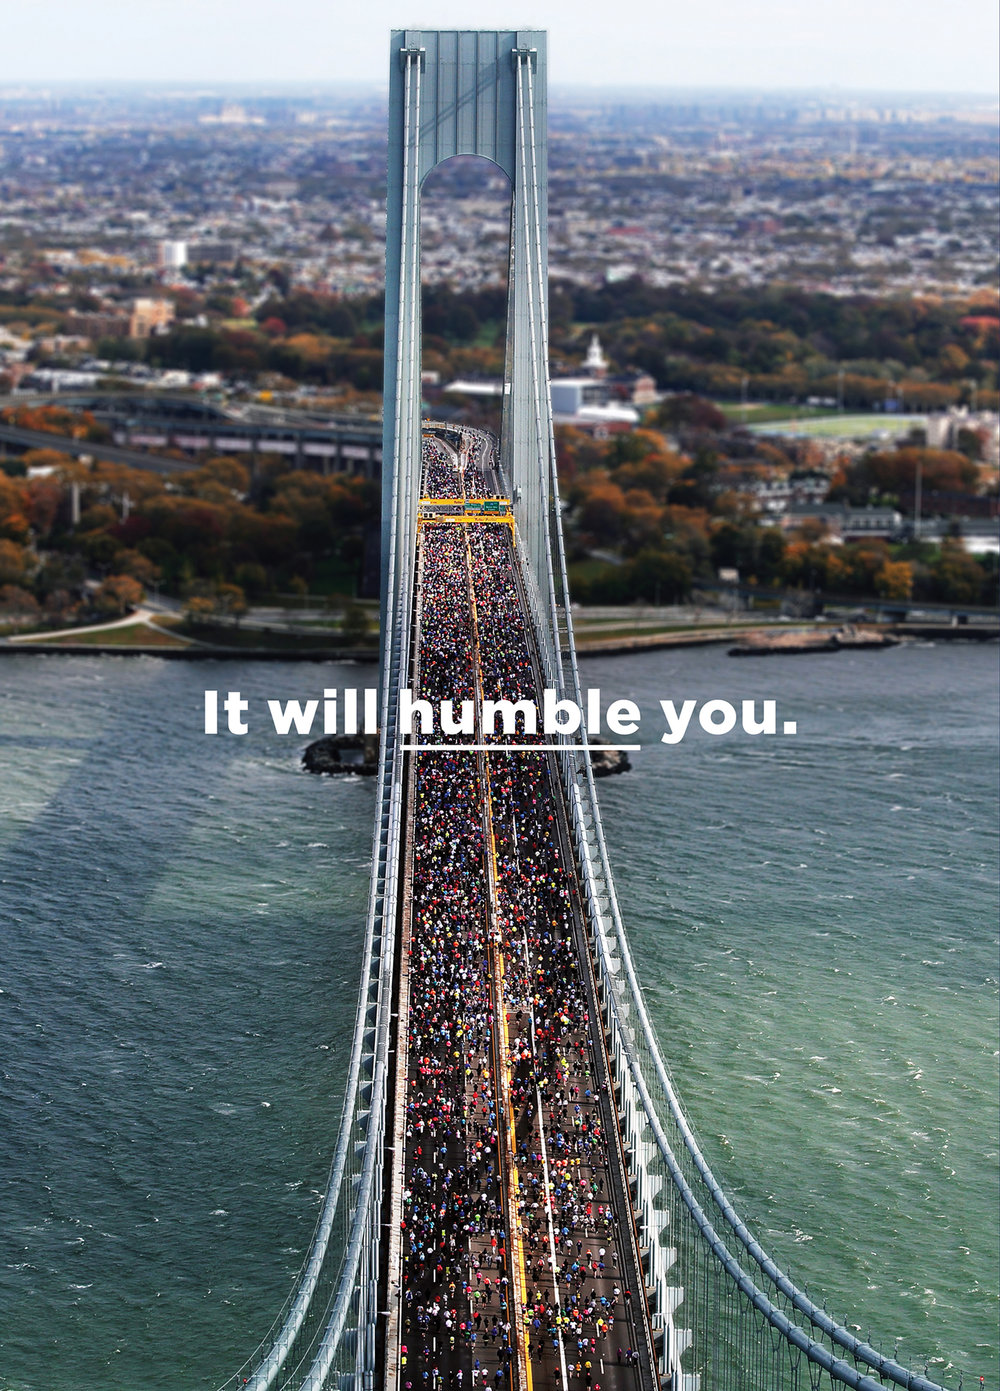 NYRR_2Sheet_Humble (1).jpg